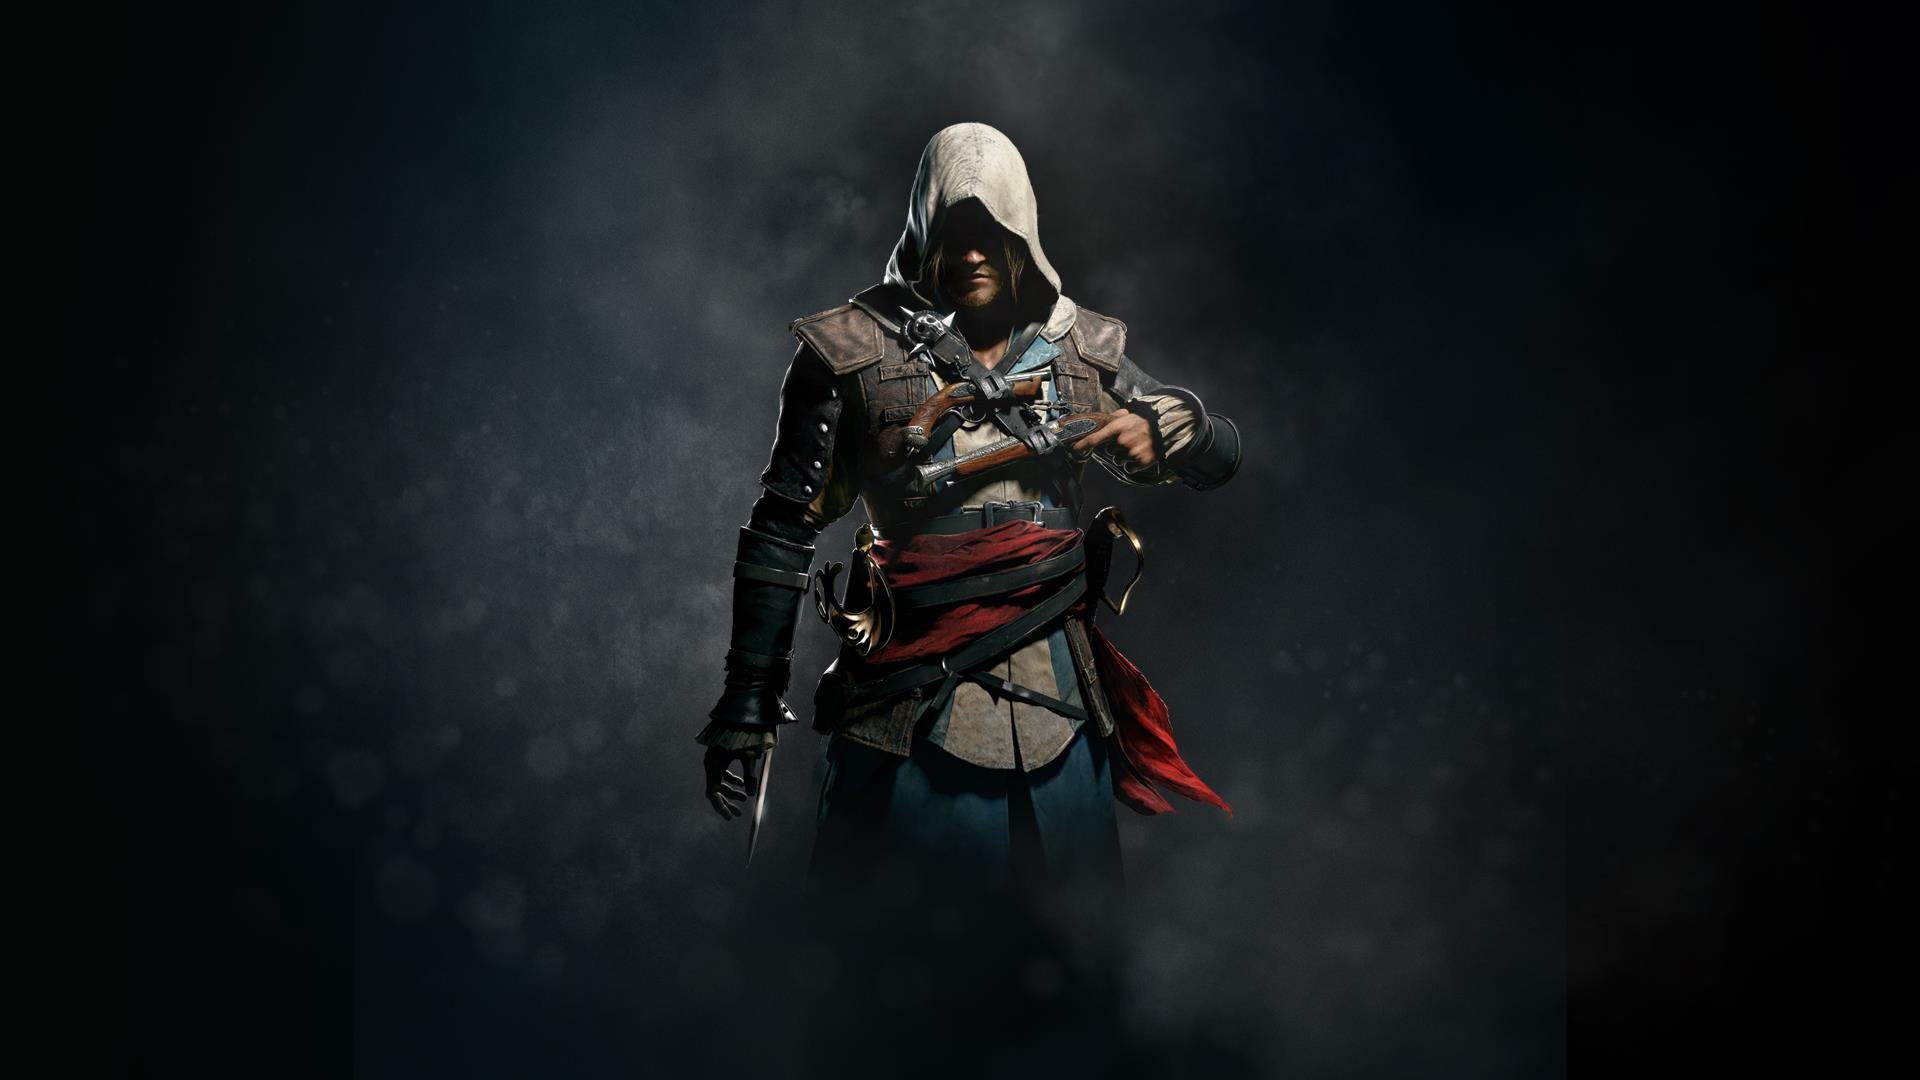 Redingote Up! in Assassin's Creed IV: Black Flag